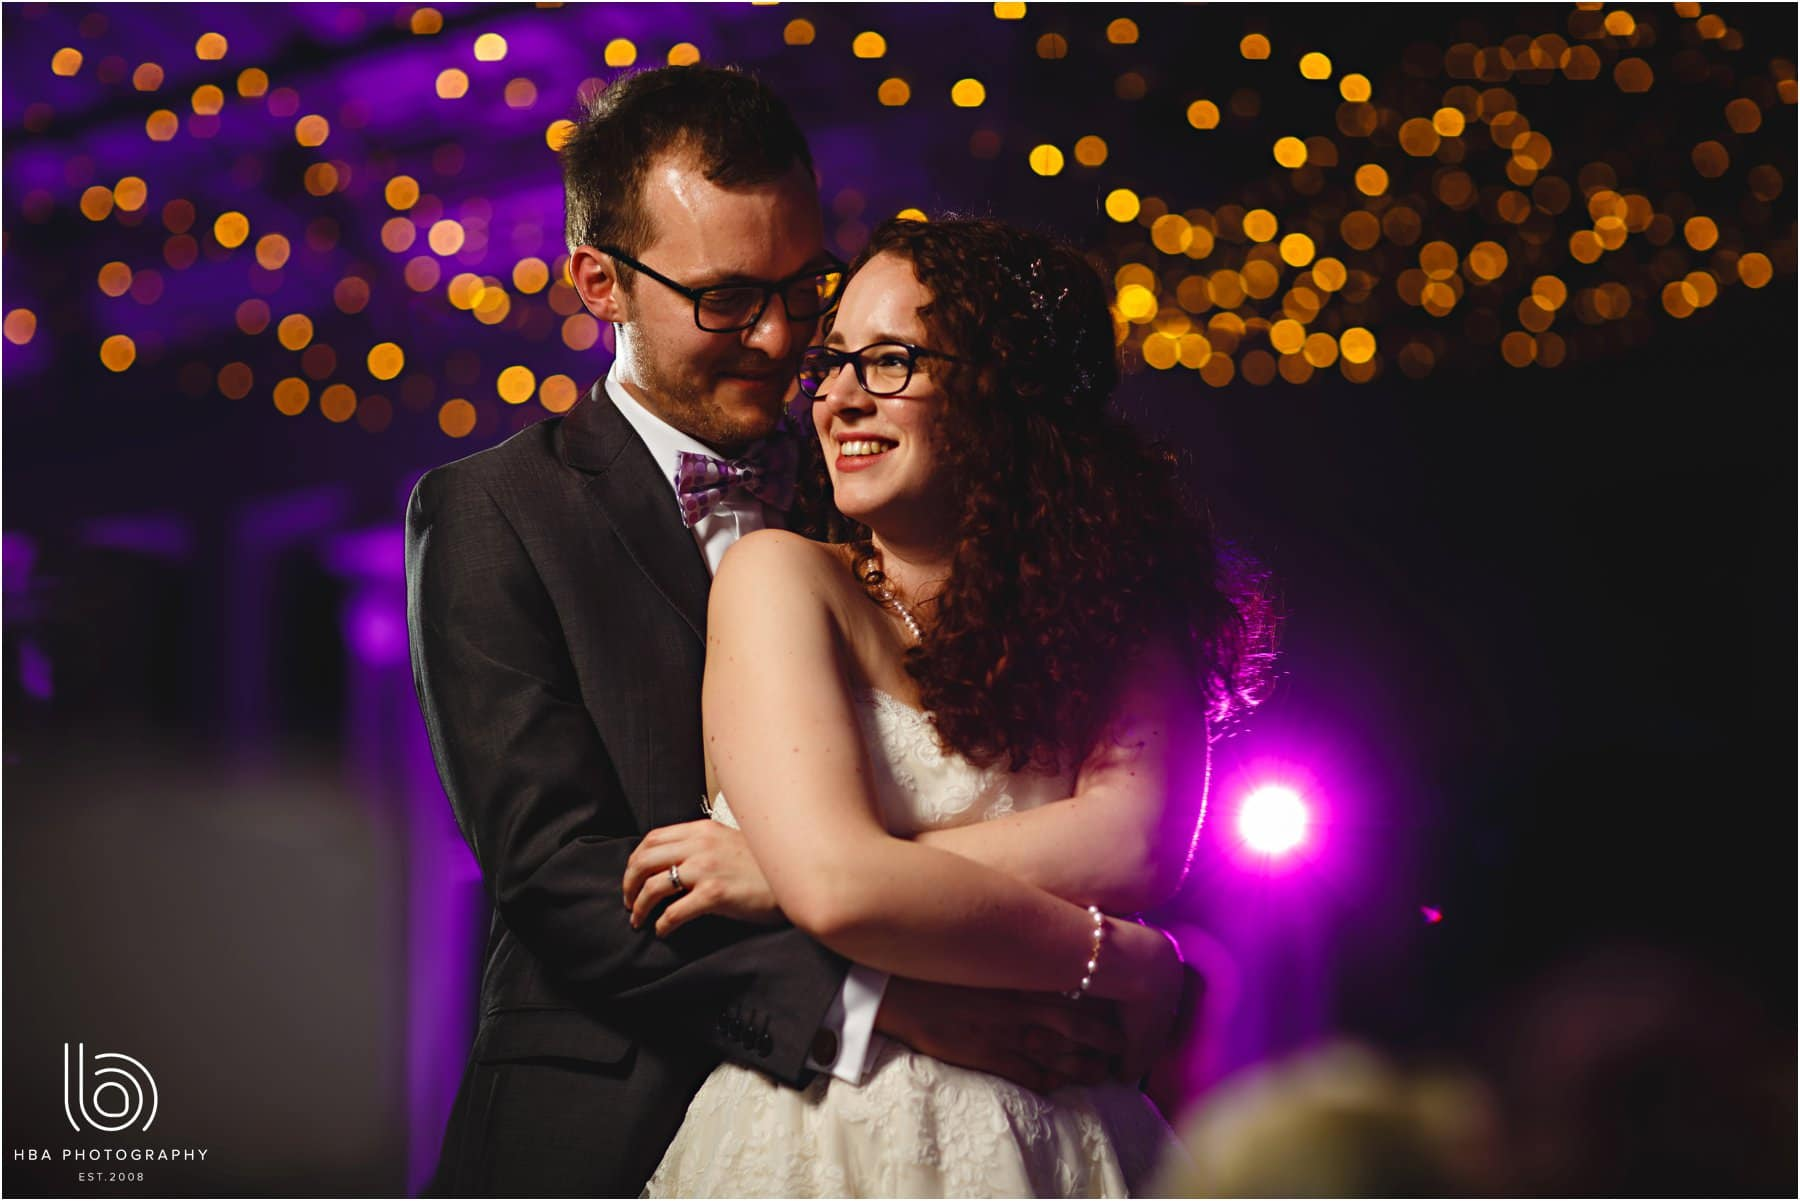 the bride and groom with fairy light back drop